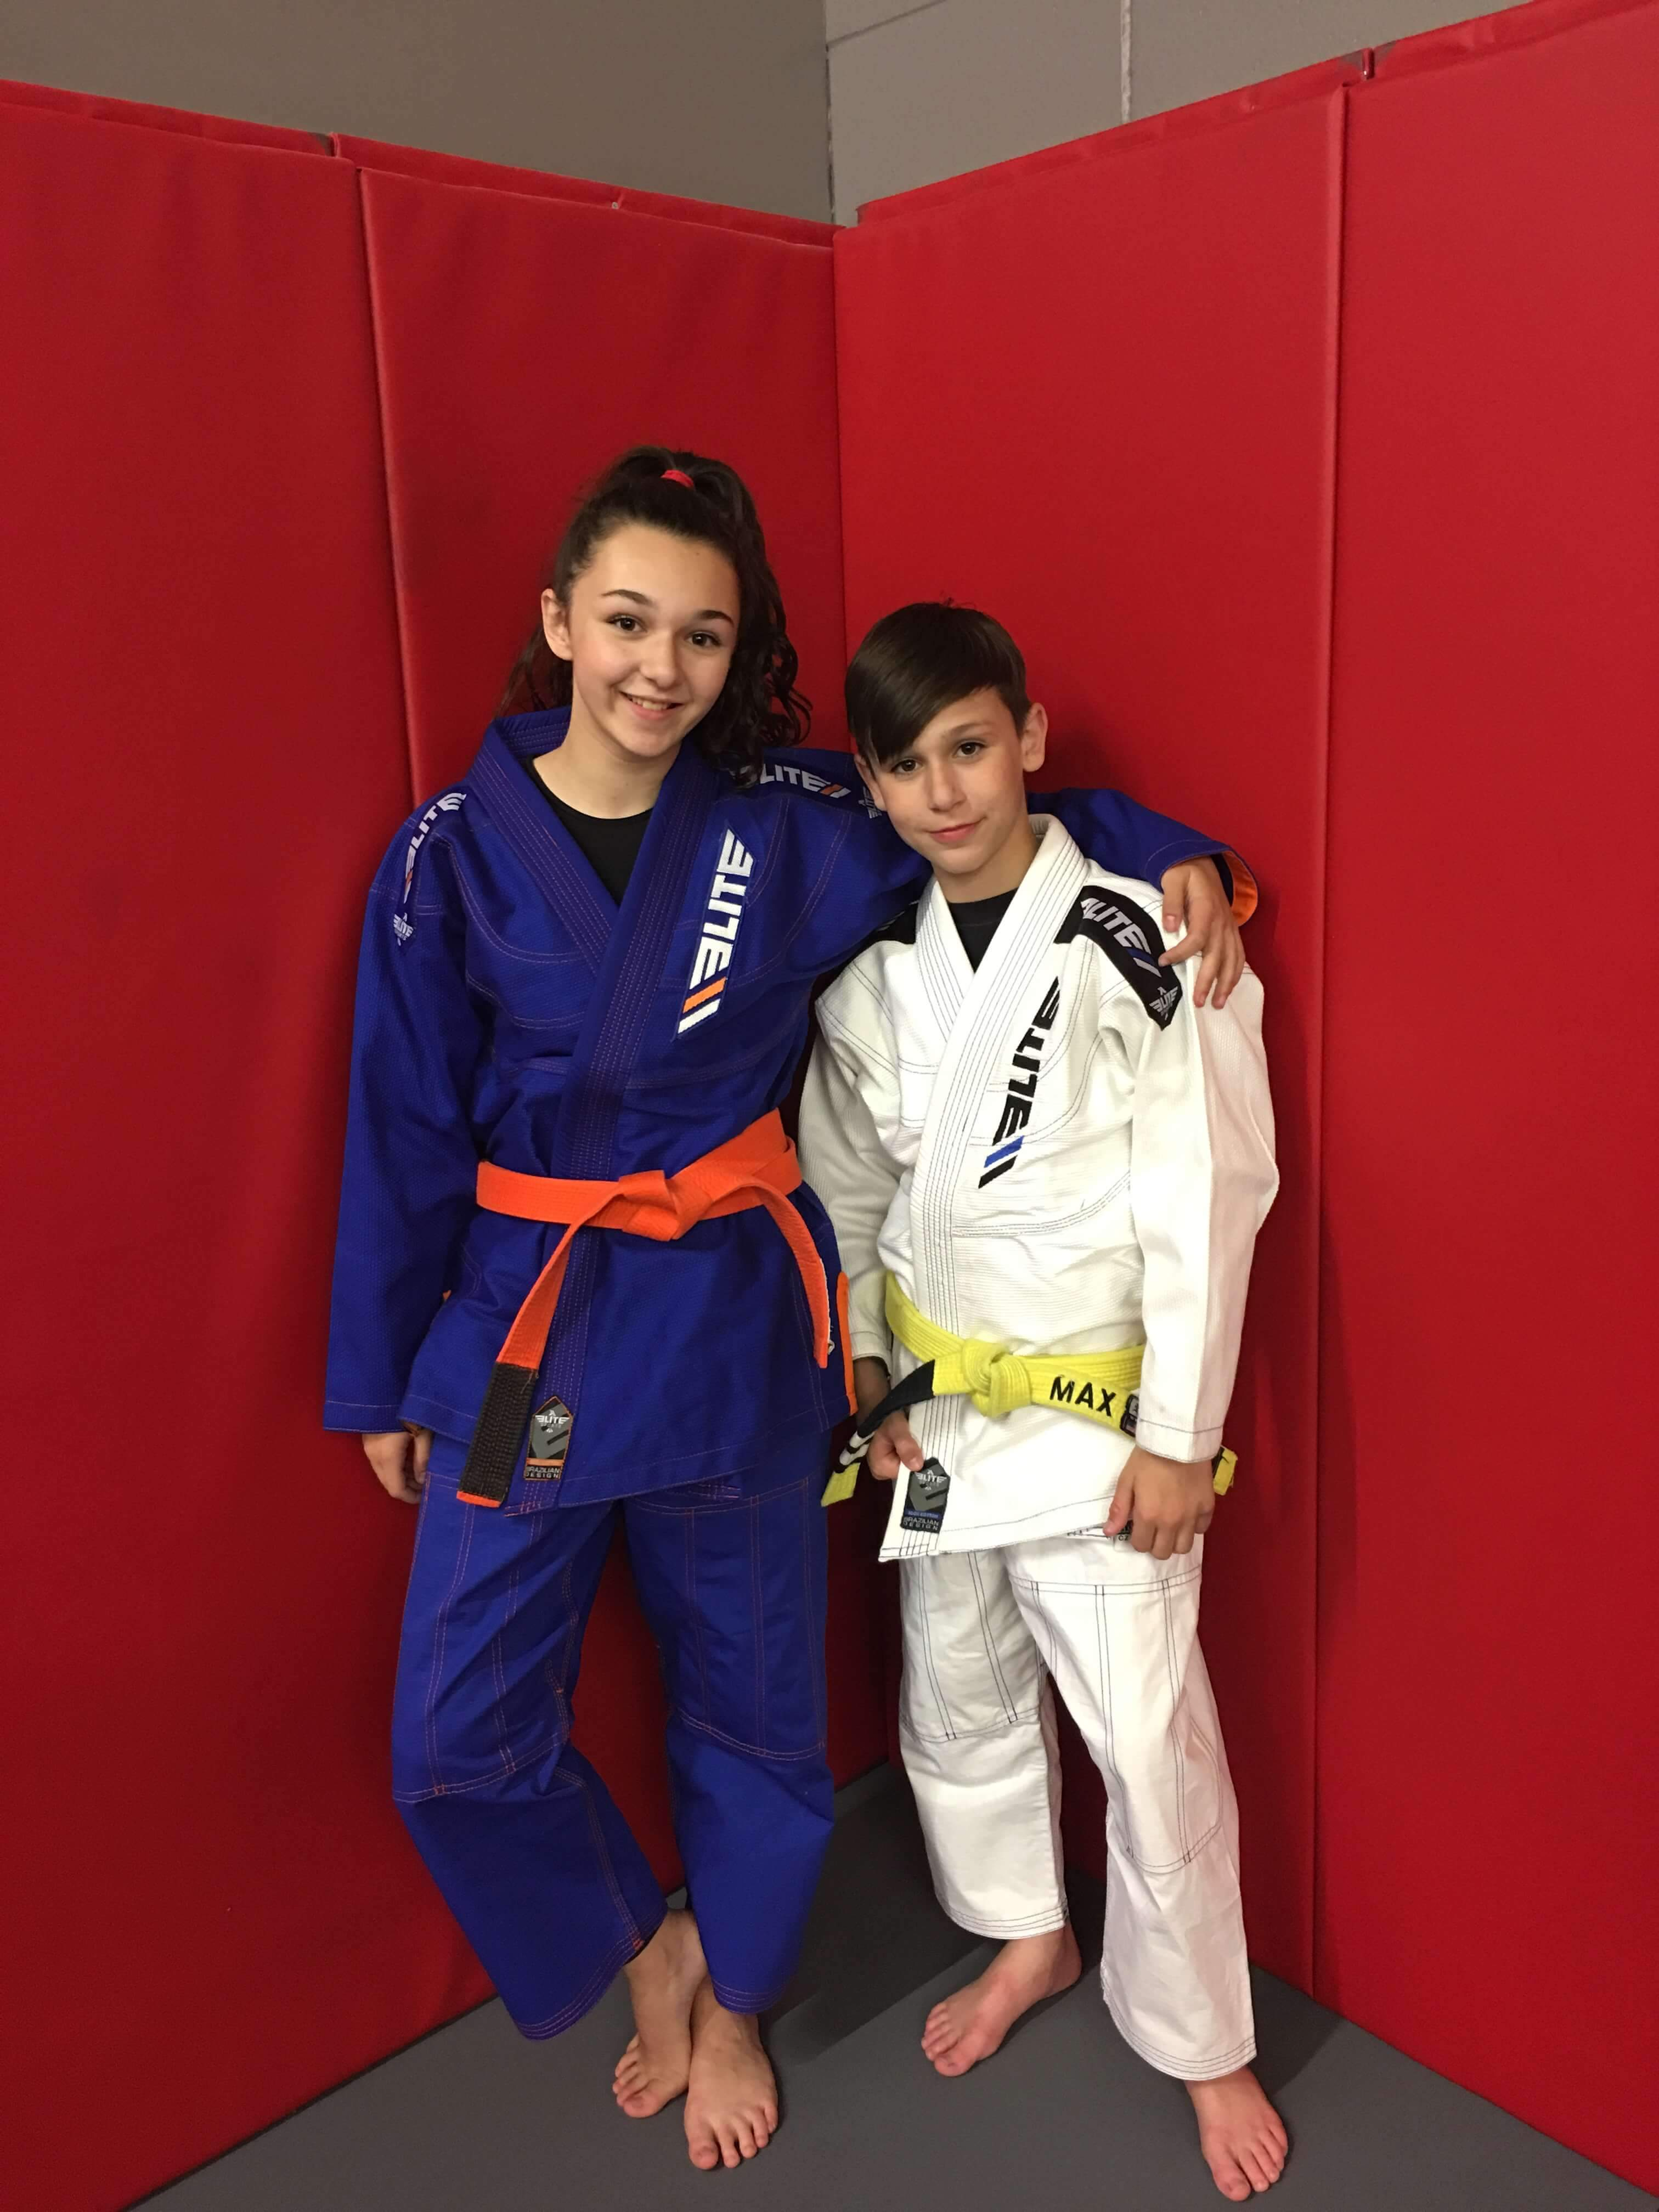 Elite Sports Team Elite Bjj Fighter Claire MacDougall  Image6